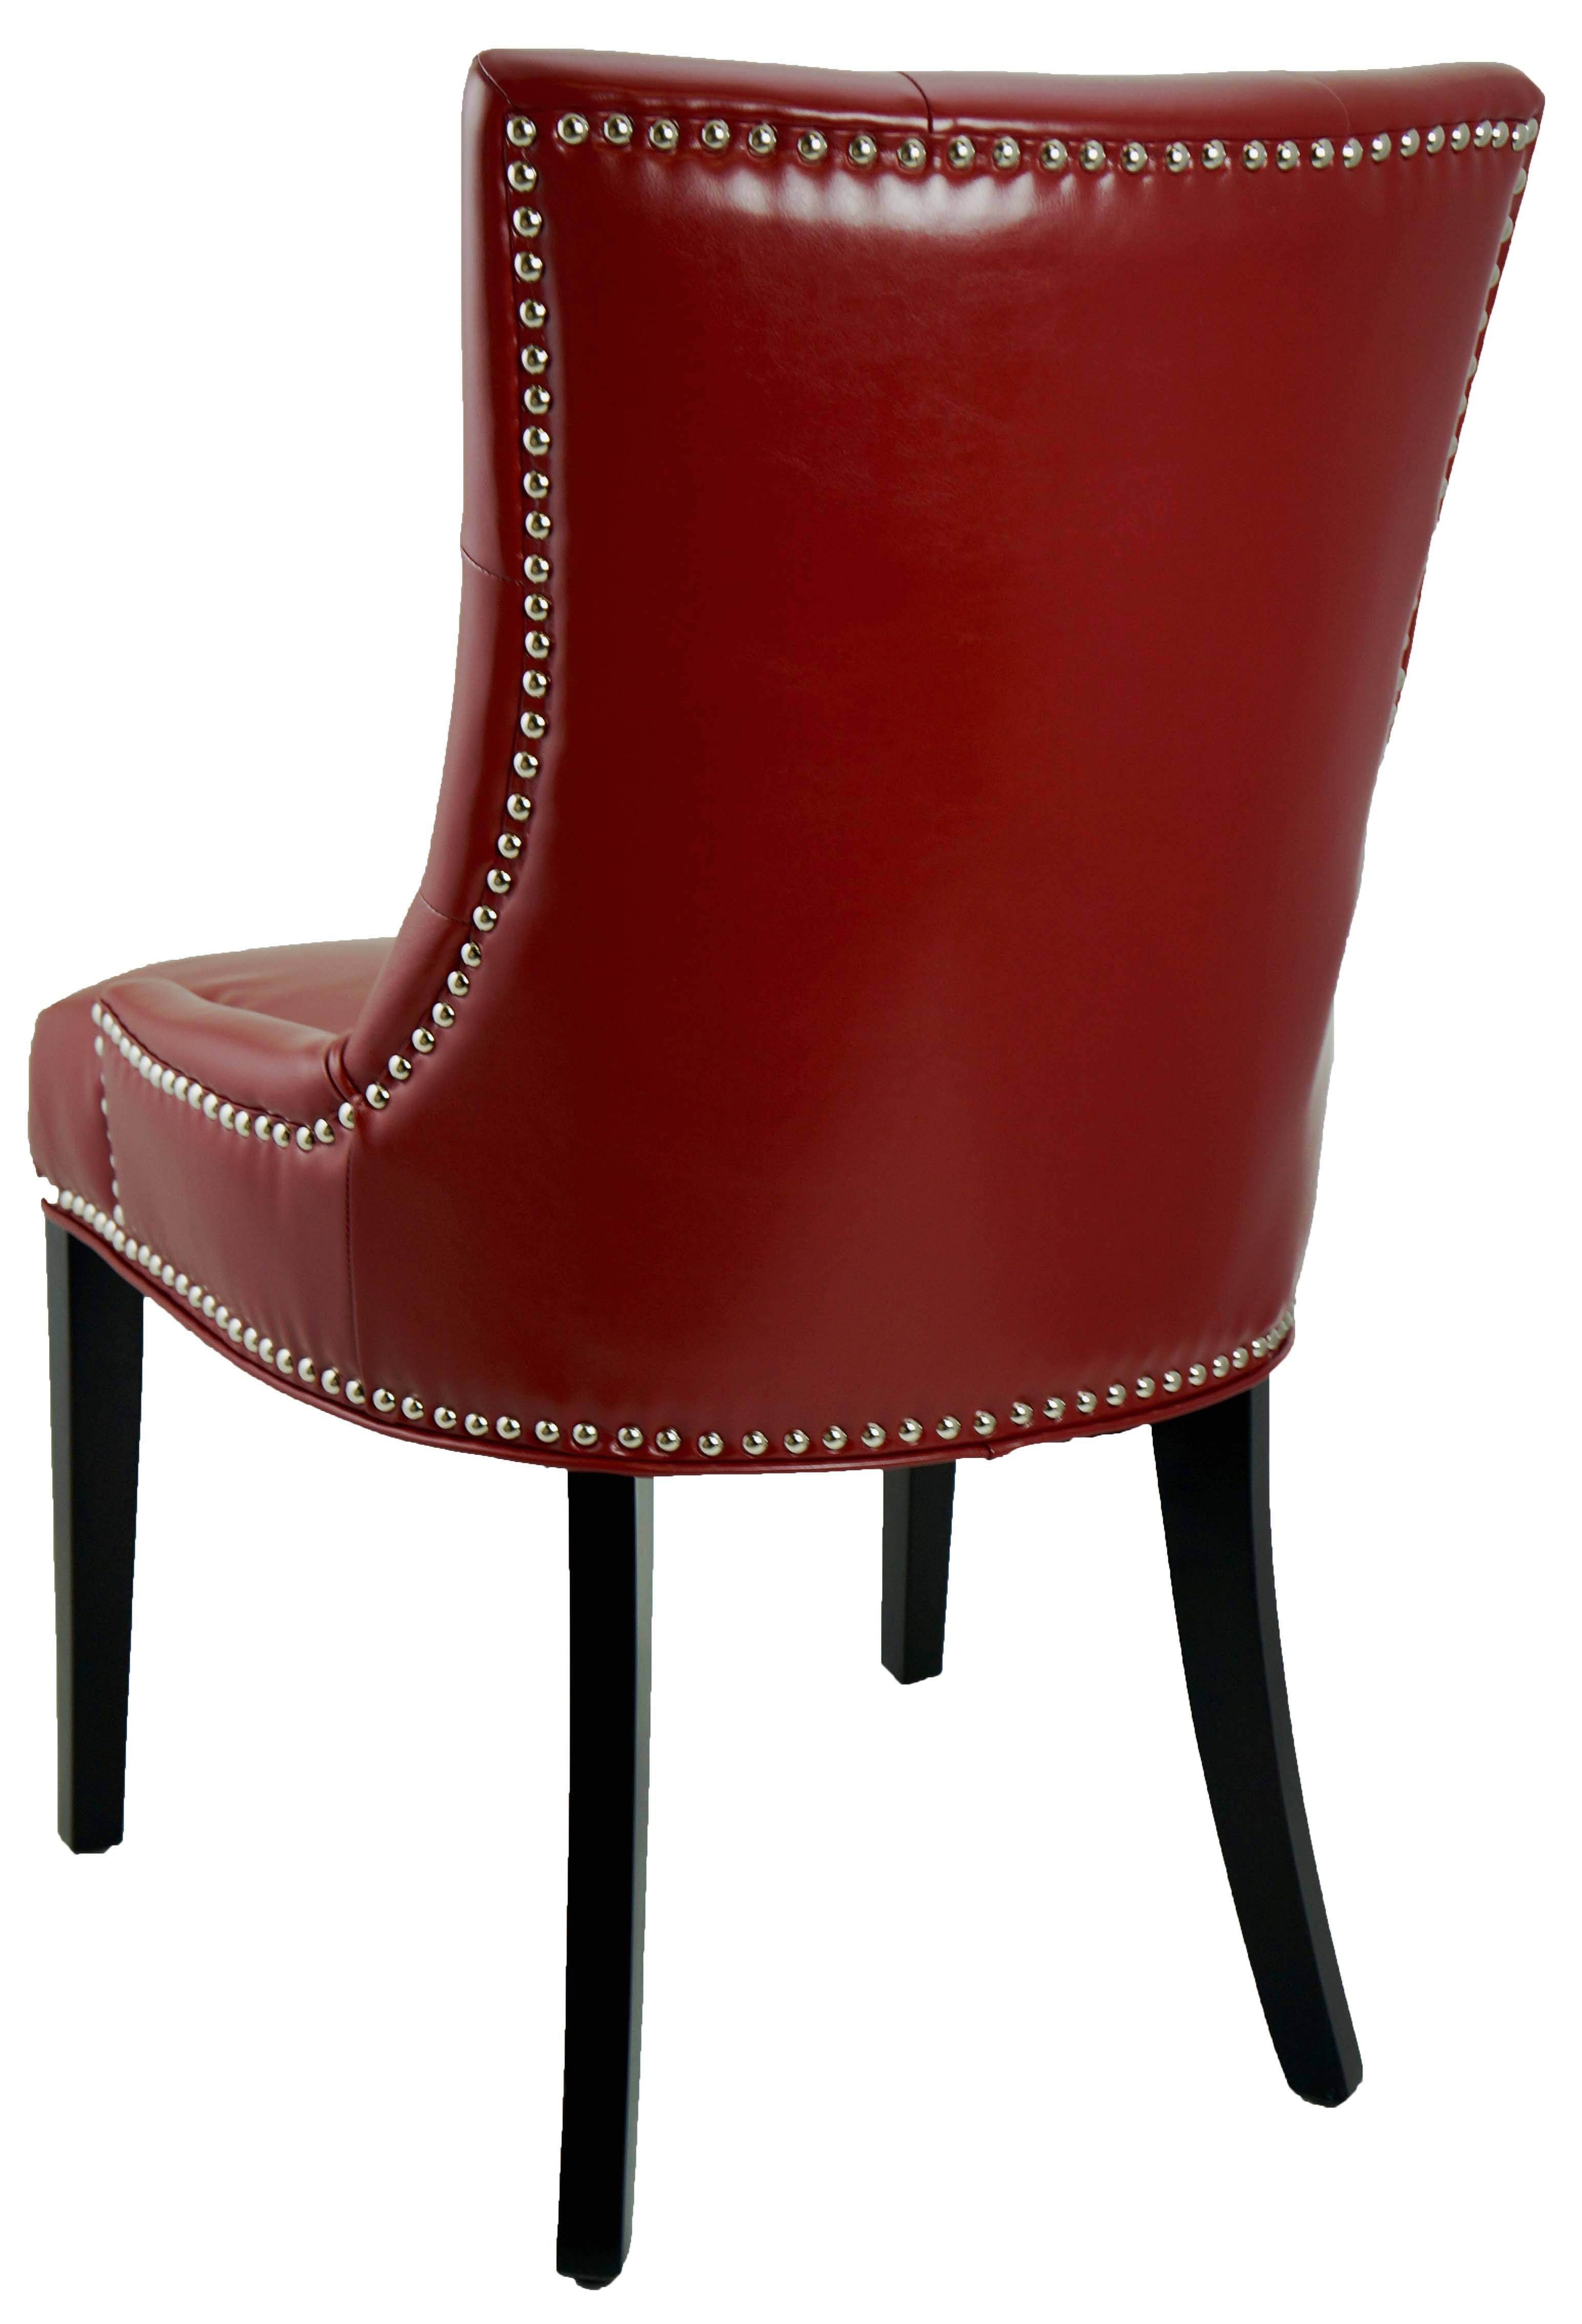 Red Leather Dining Room Chairs Leather Parson Dining Room Kitchen Chairs Red Accent Tufted